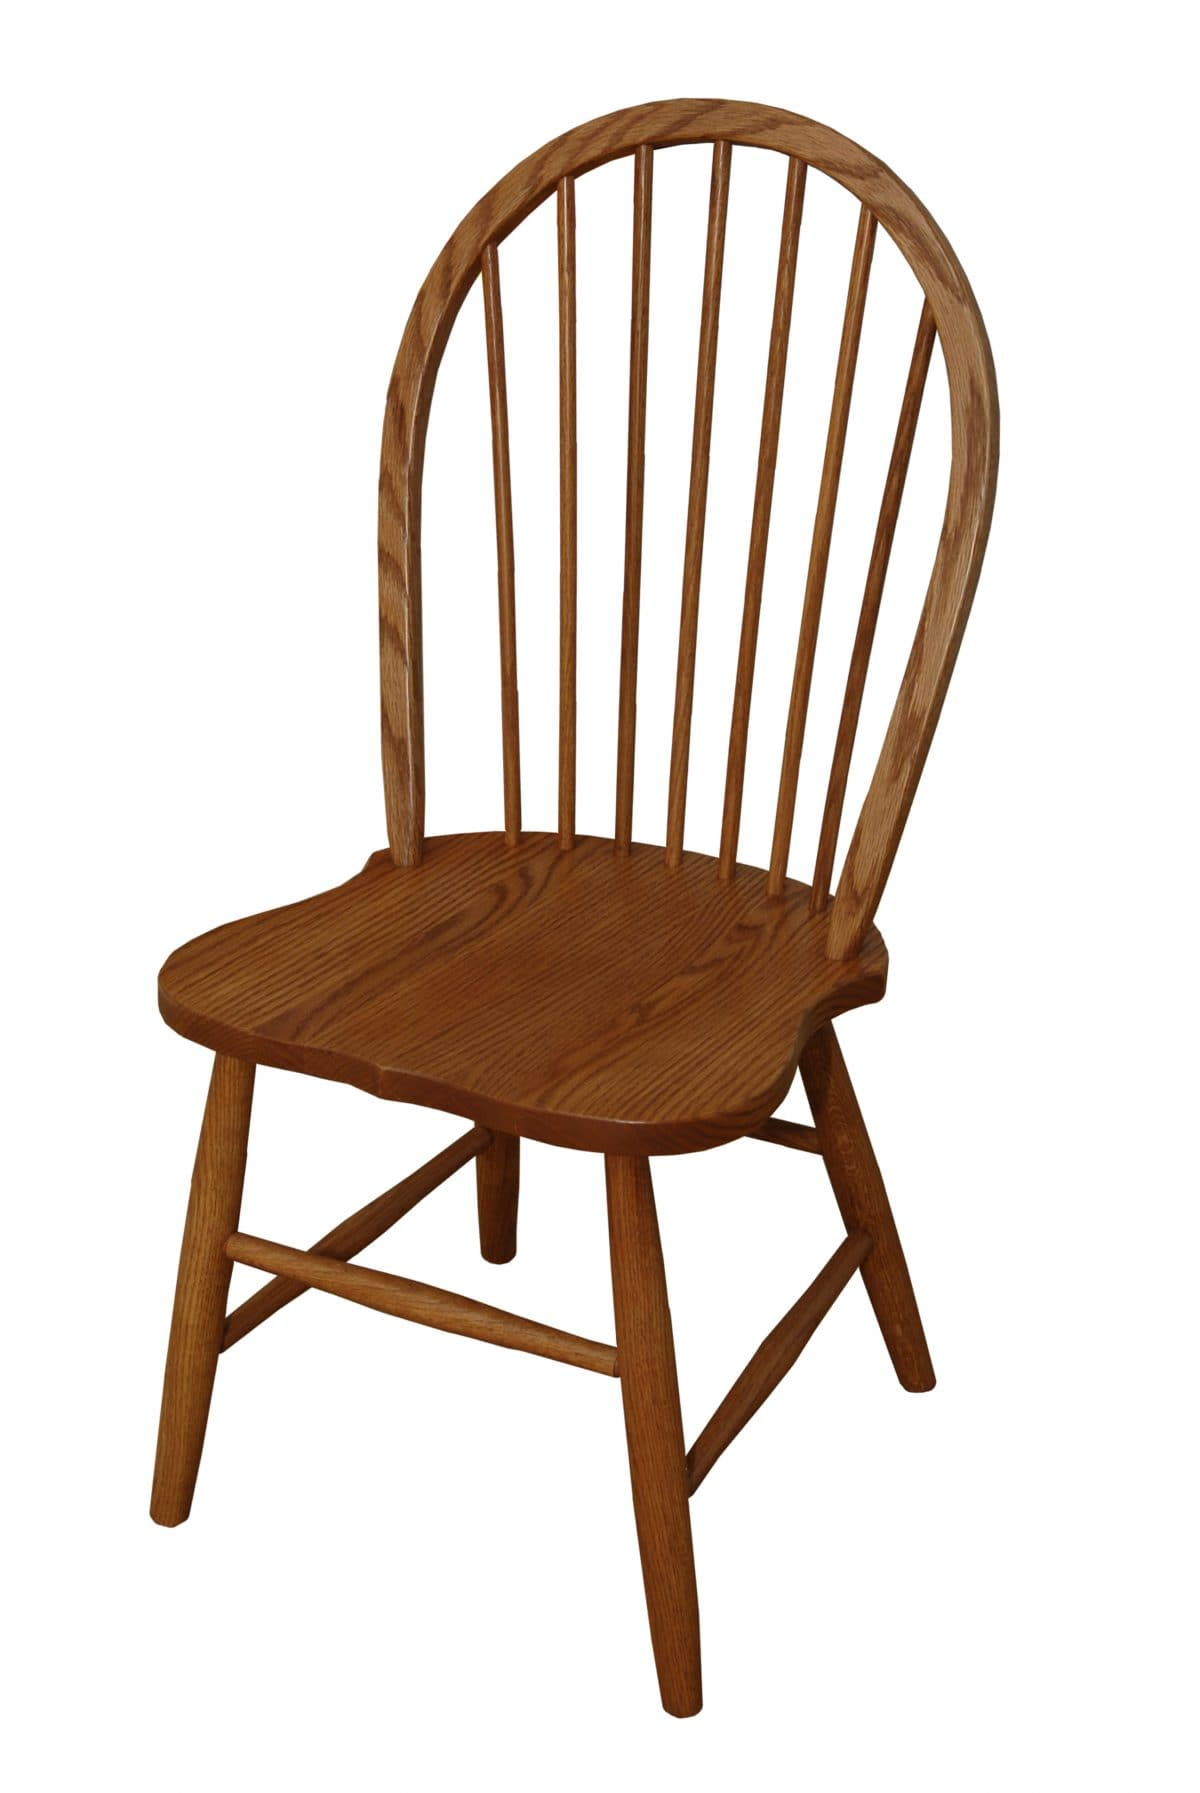 Photo of: HW 7 Spindle Side Chair